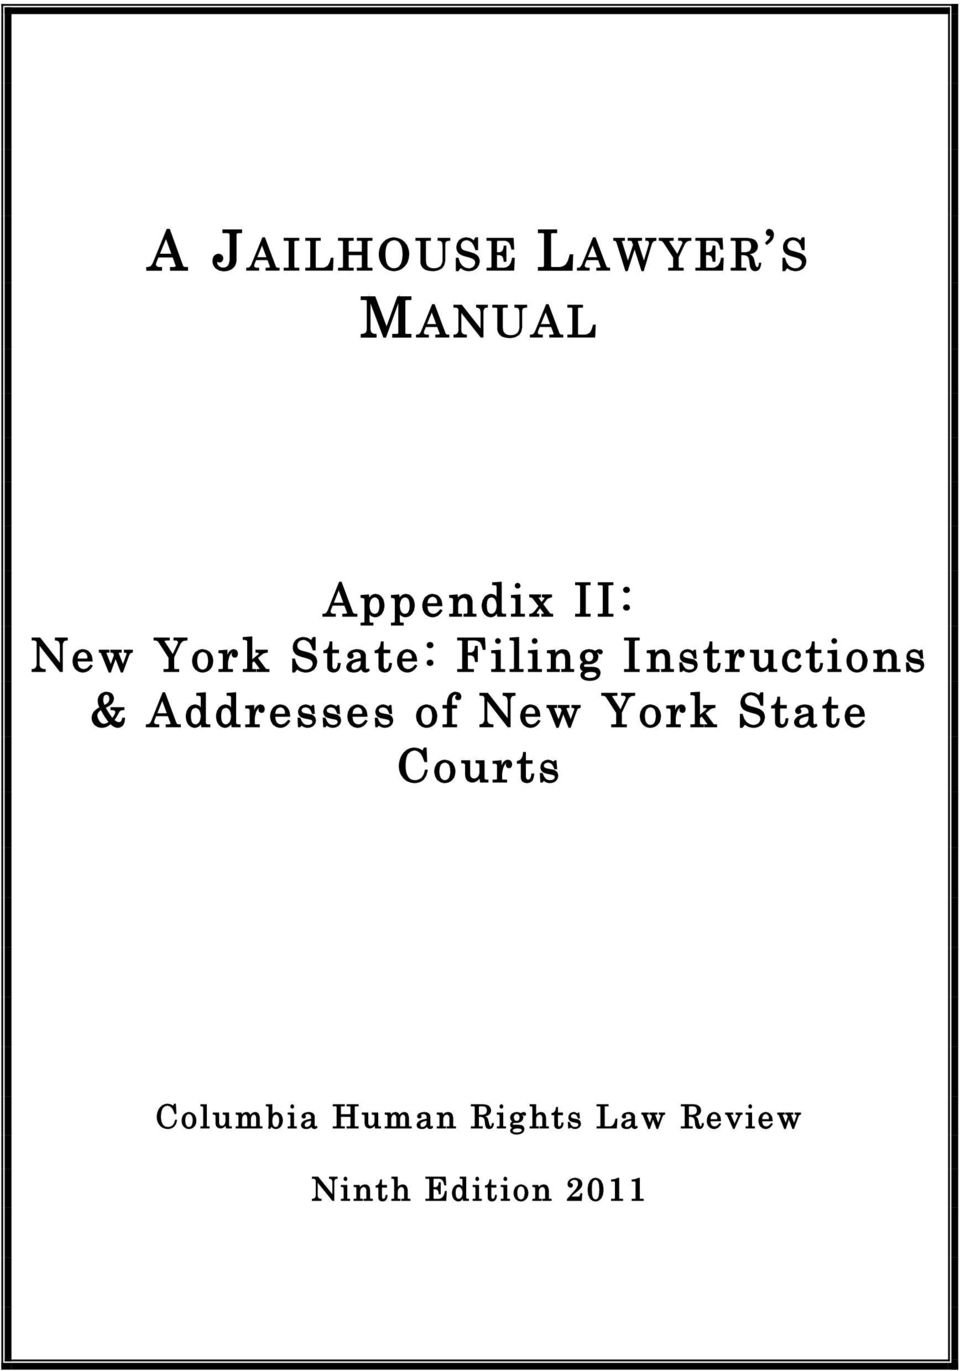 Addresses of New York State Courts